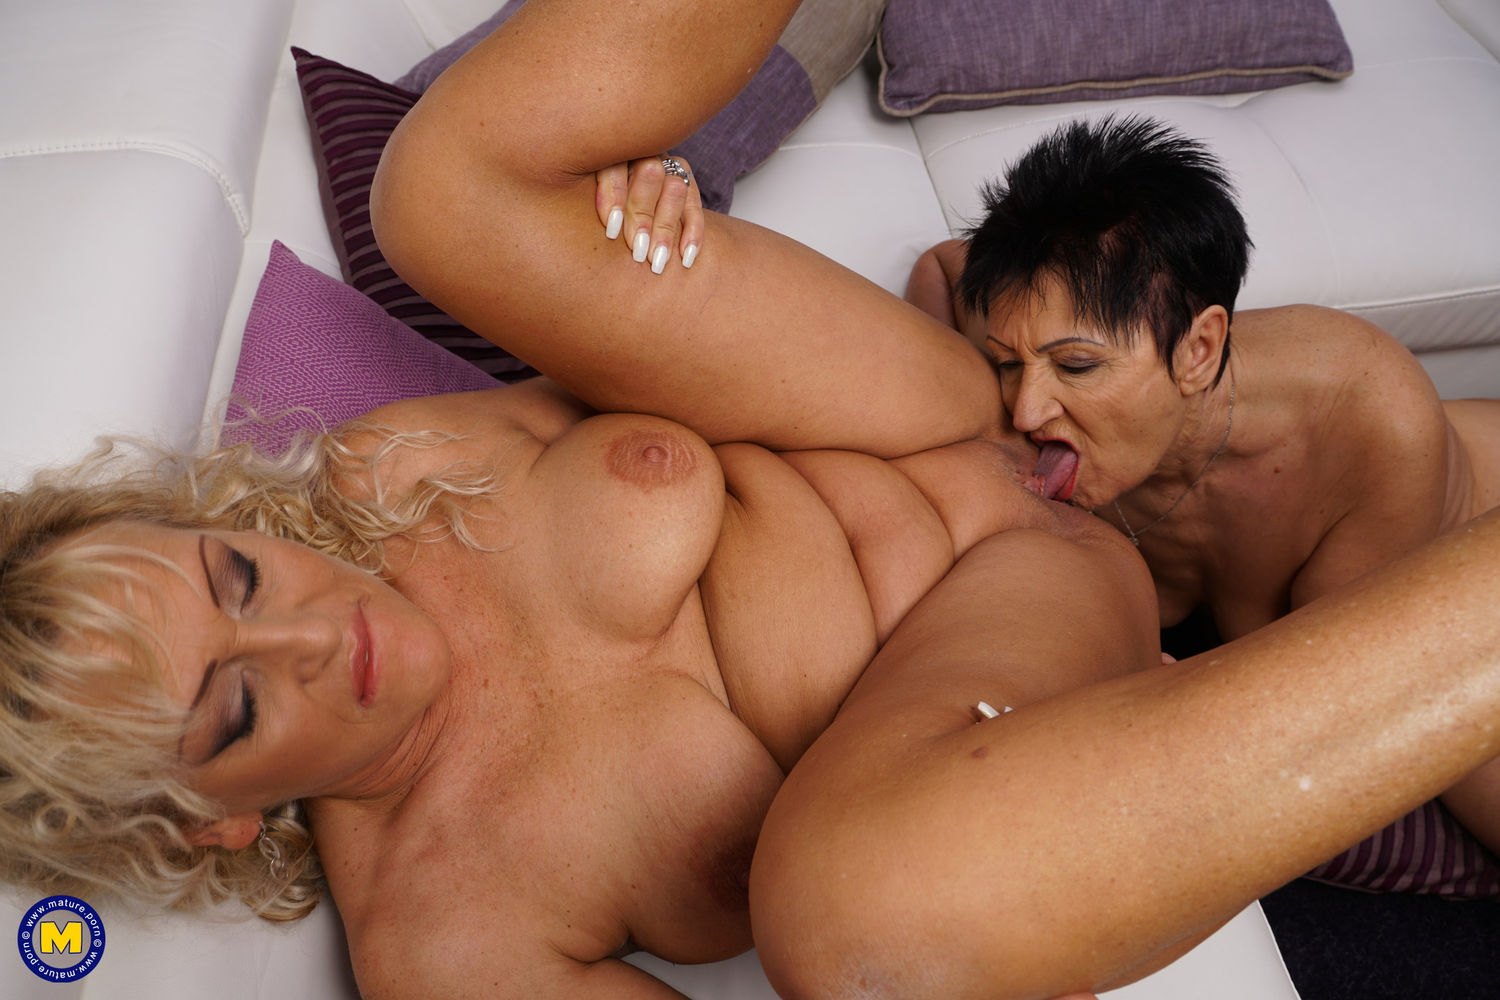 Two naughty mature lesbians have great fun together and kissing. Mature lesbian rimming and puss ...